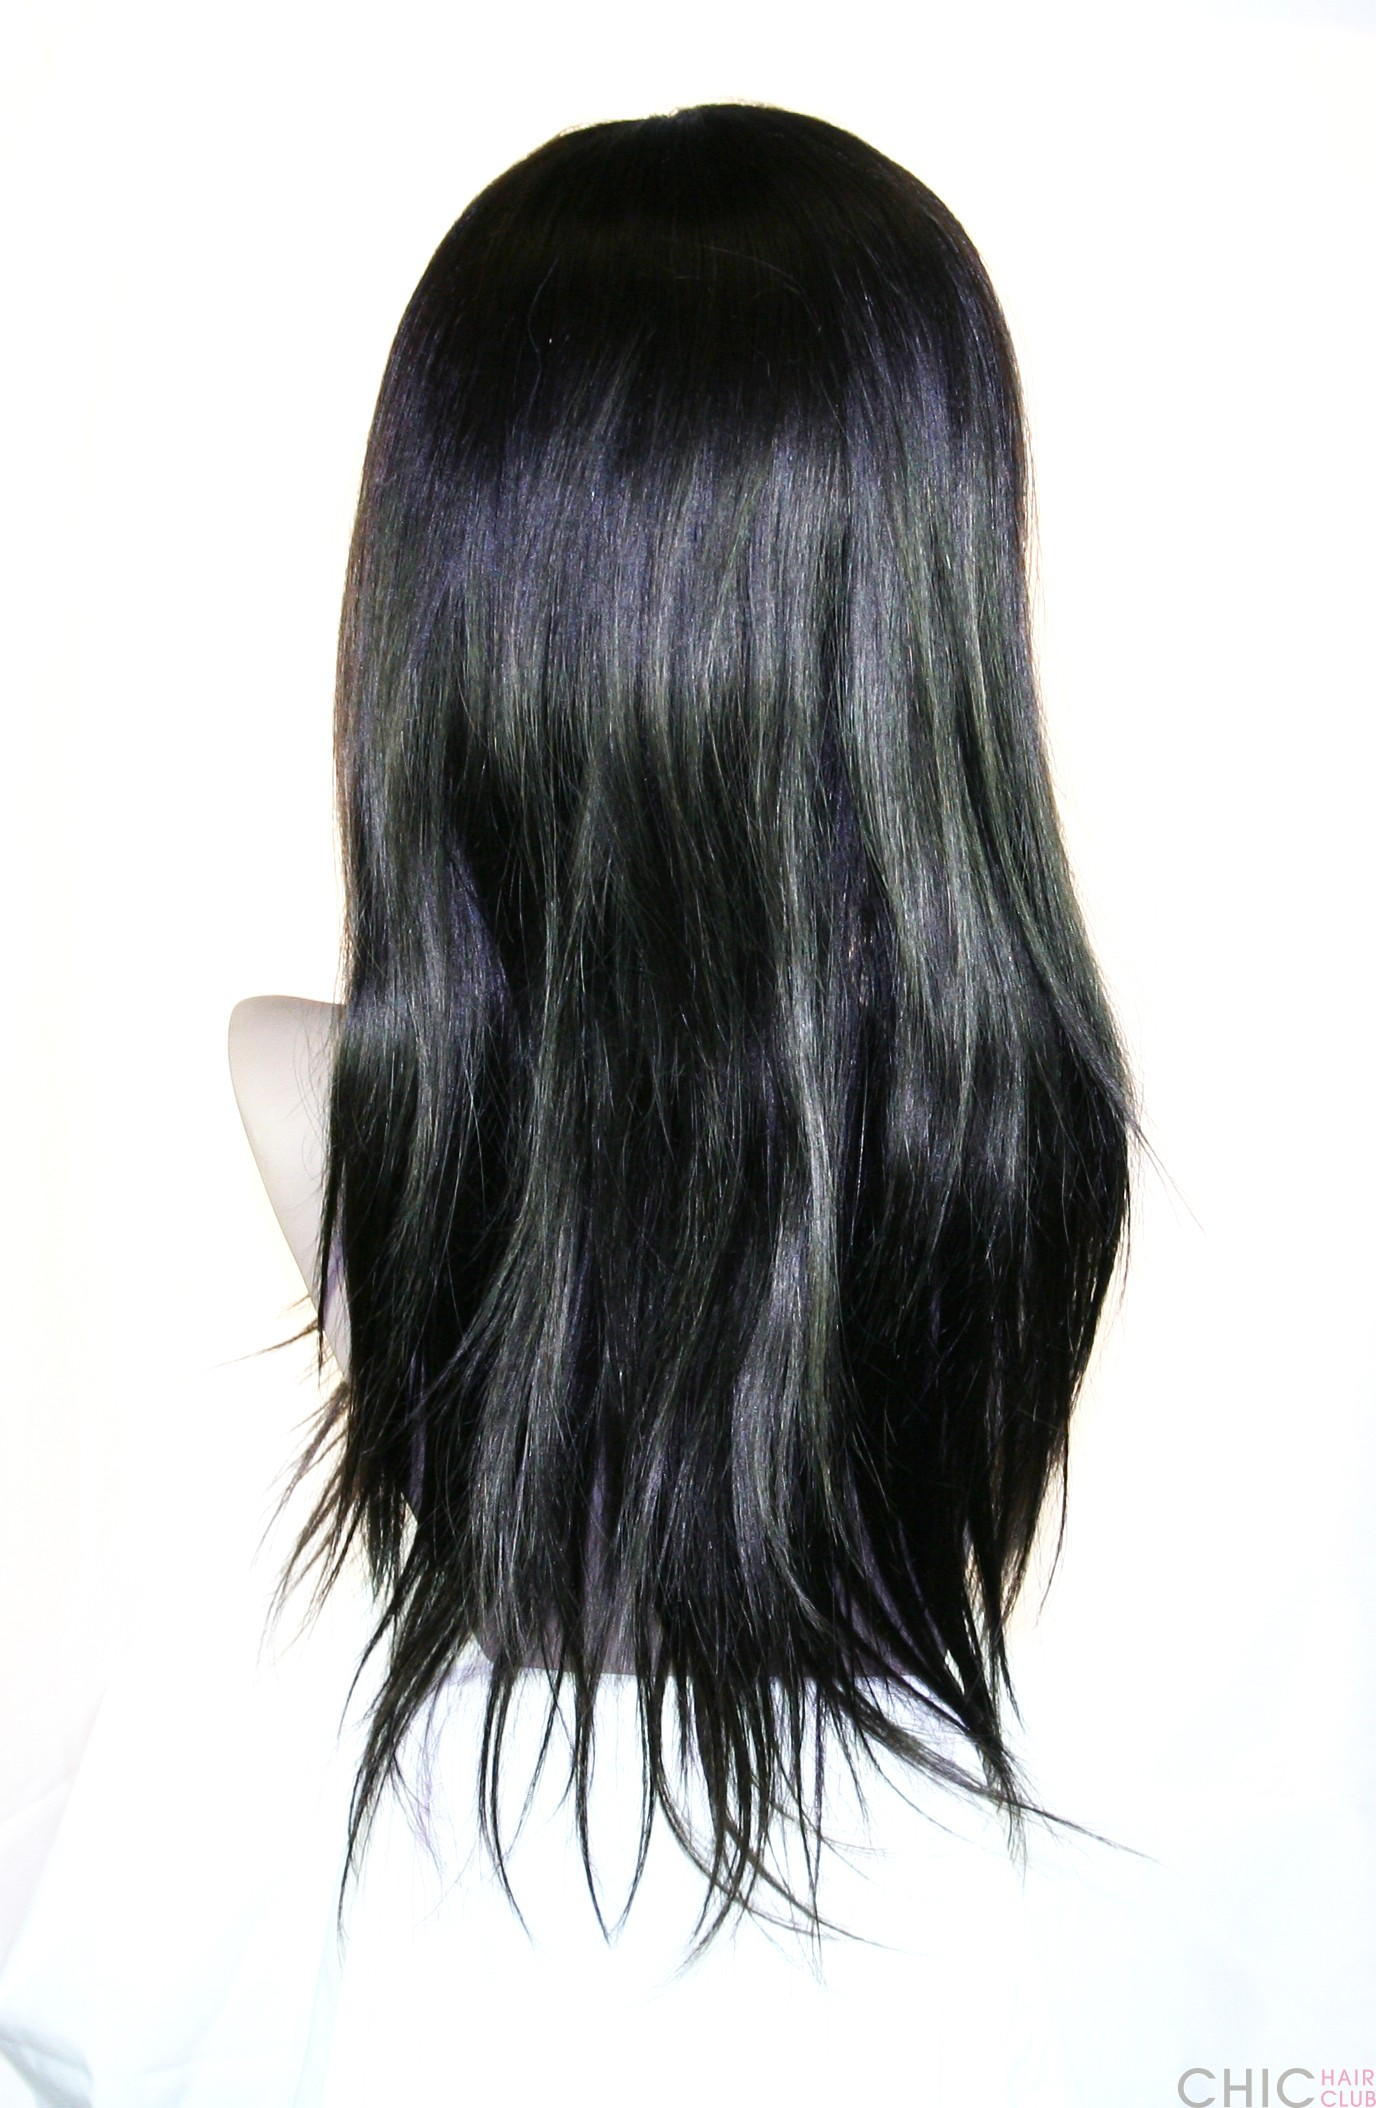 Straight Black Hair Back | www.imgkid.com - The Image Kid ...